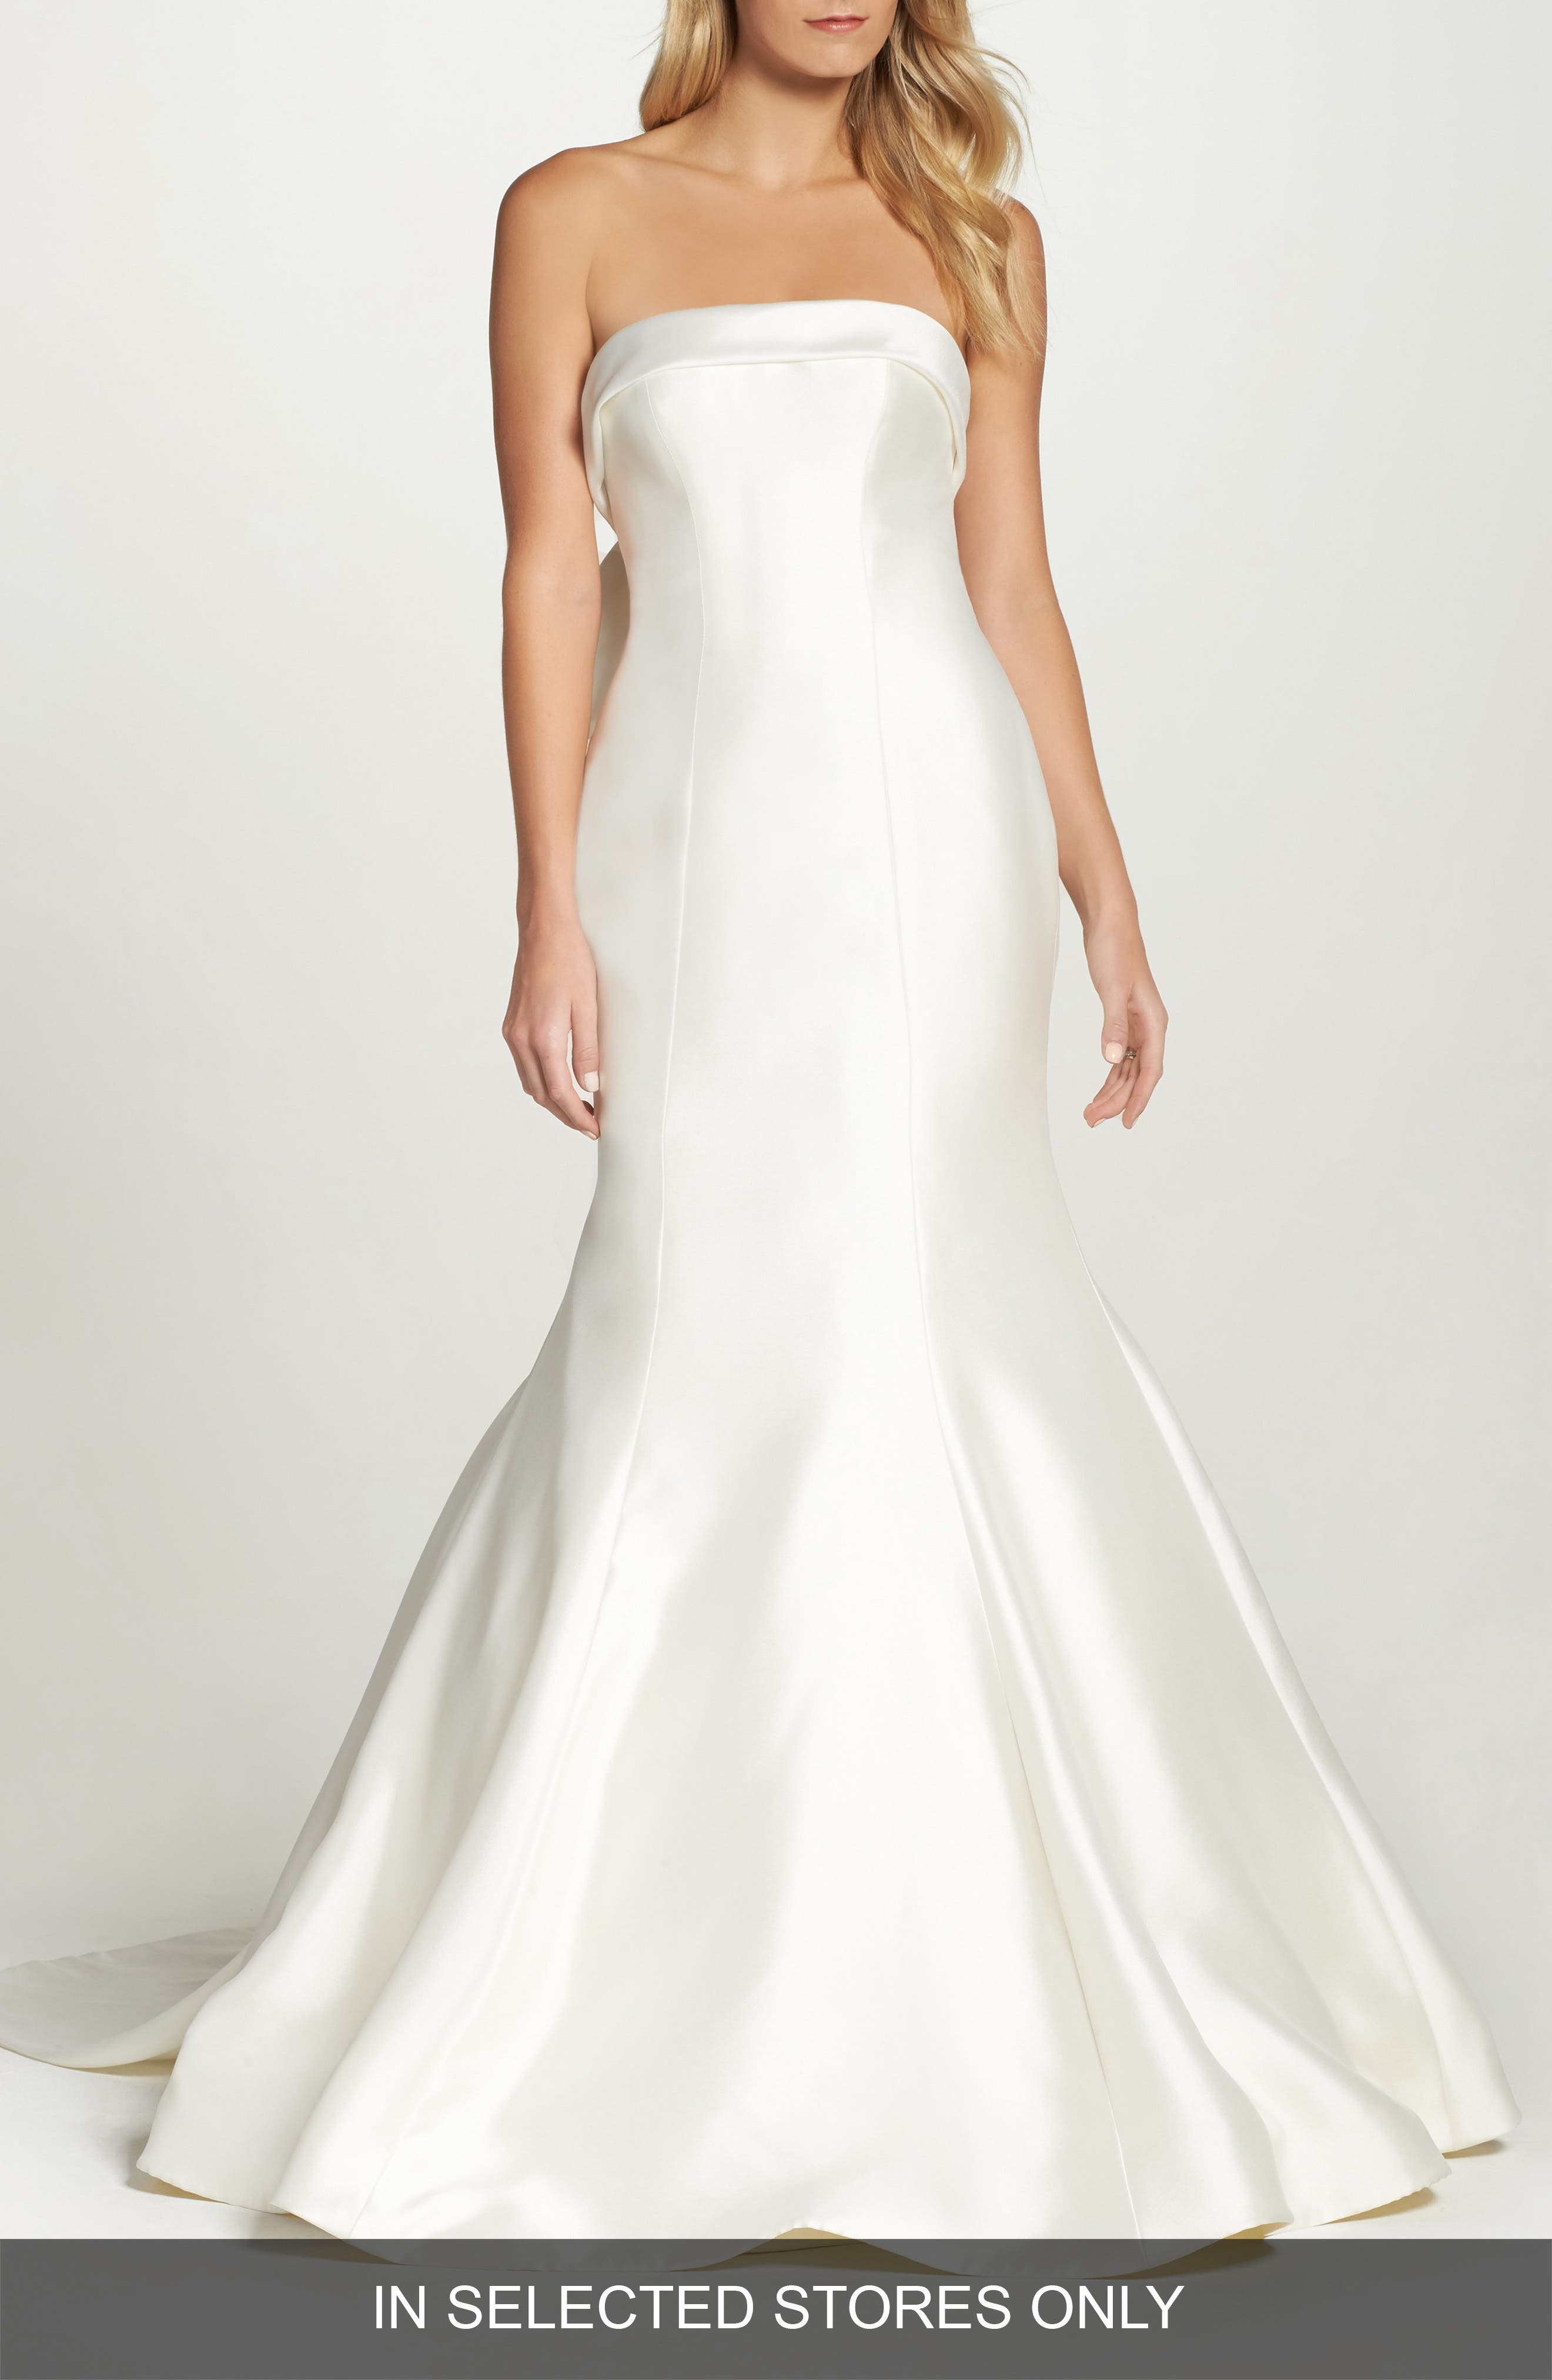 Peony Strapless Mikado Trumpet Gown with Bow Train,                             Main thumbnail 1, color,                             IVORY